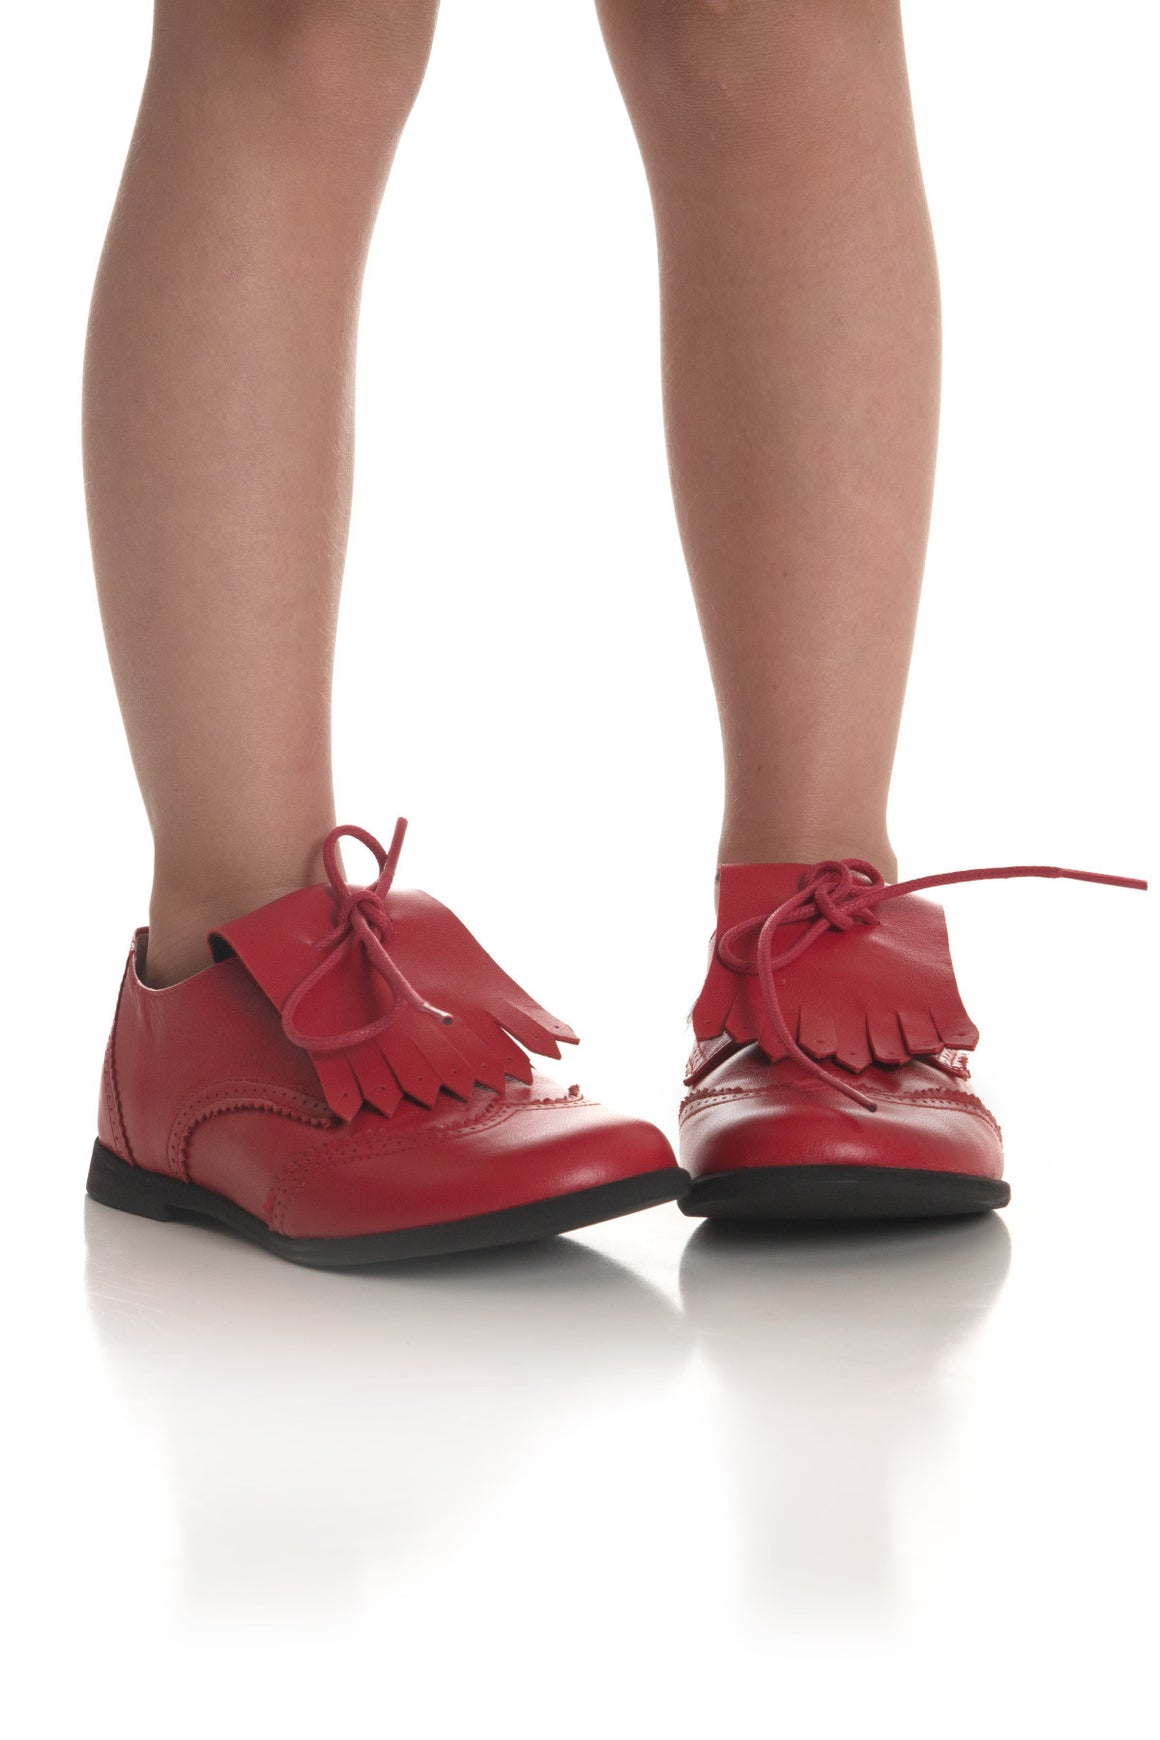 Berkely Shoe- Fringe Red Samples